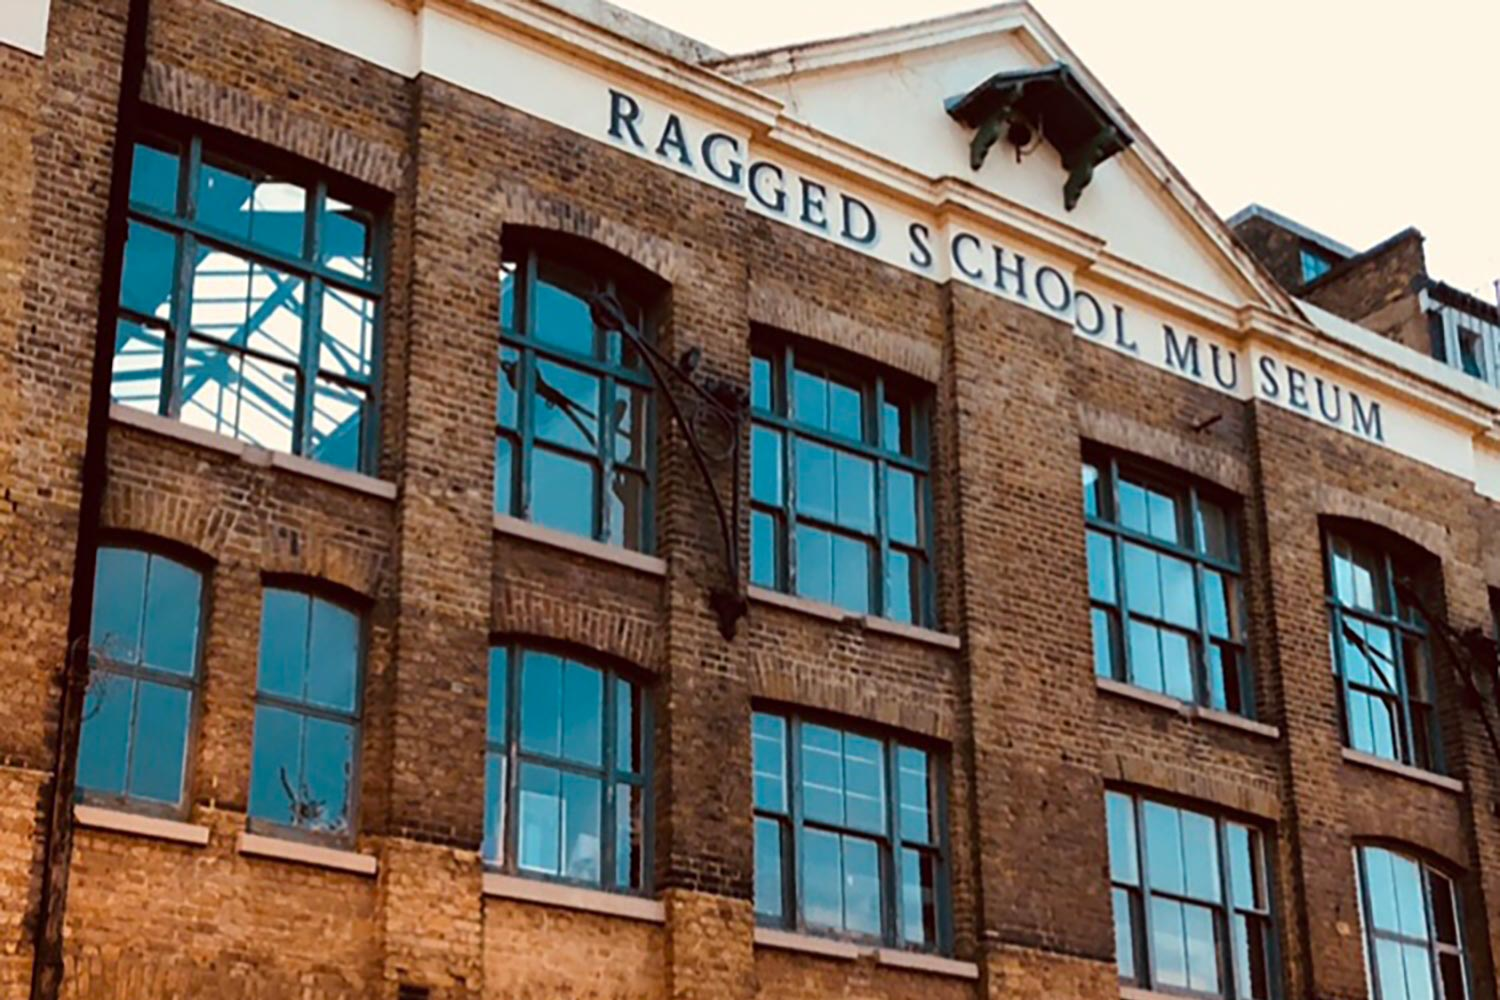 Ragged School Victorian museum East London